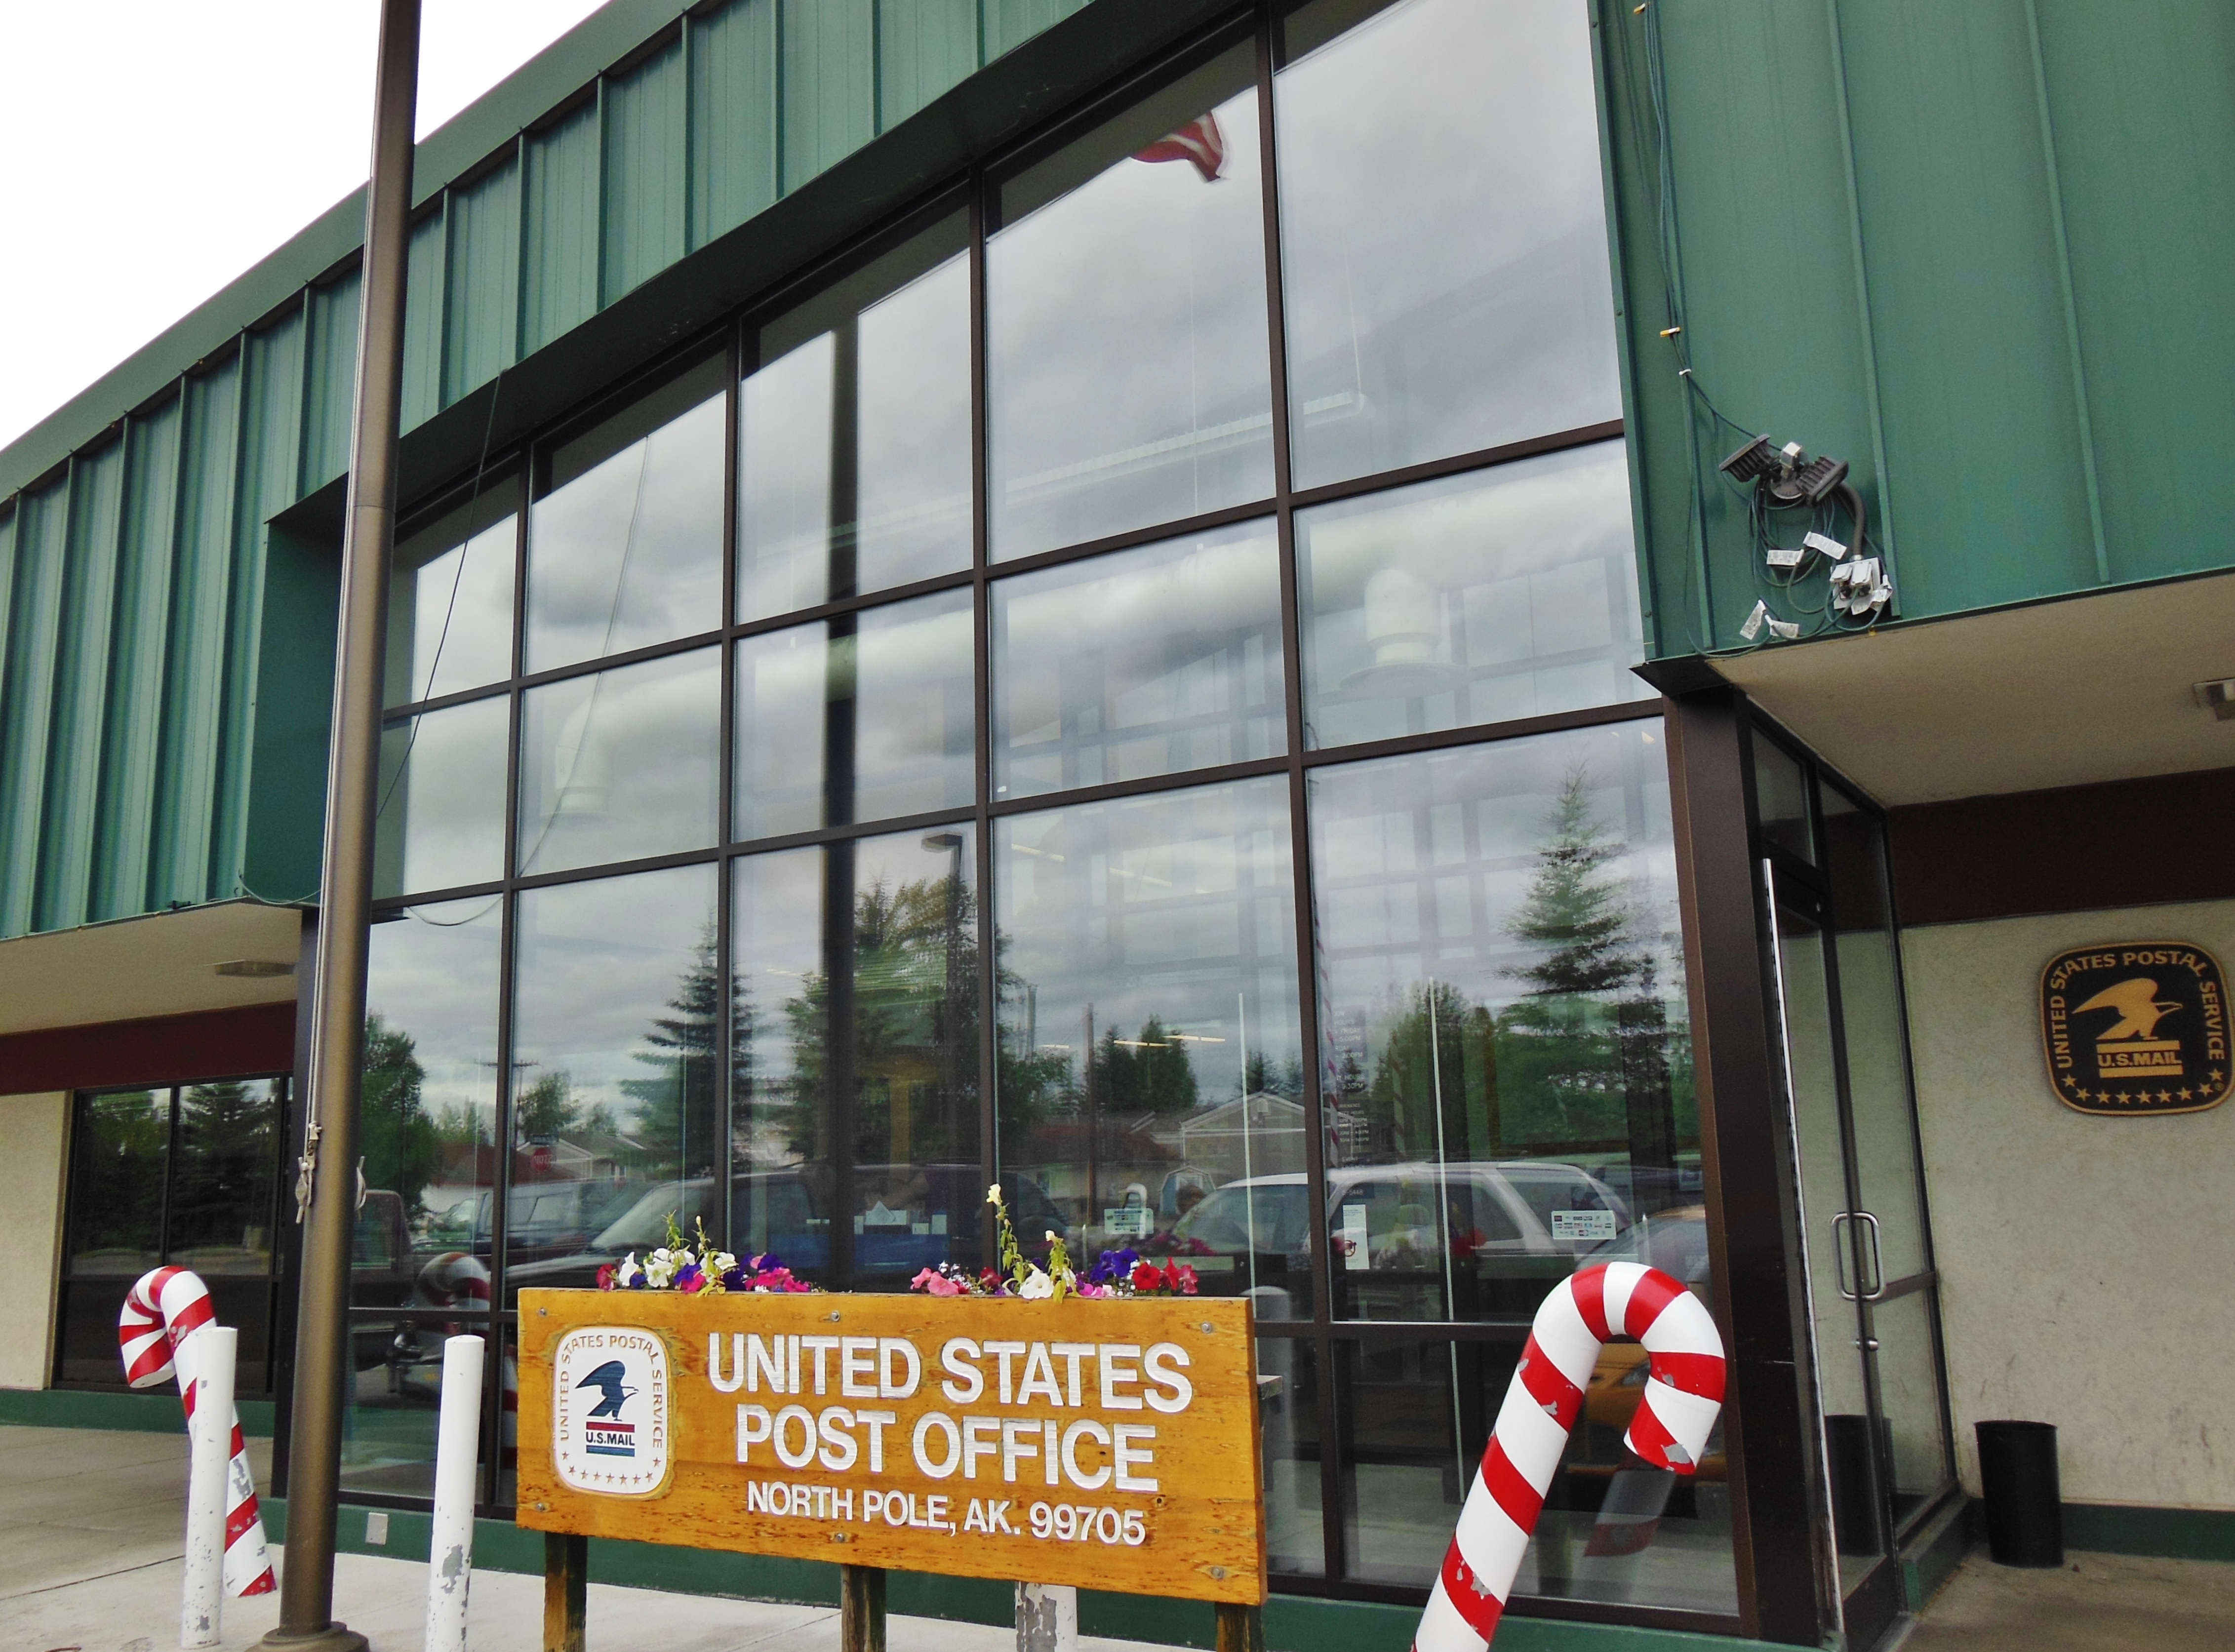 United States Post Office, North Pole, Alaska